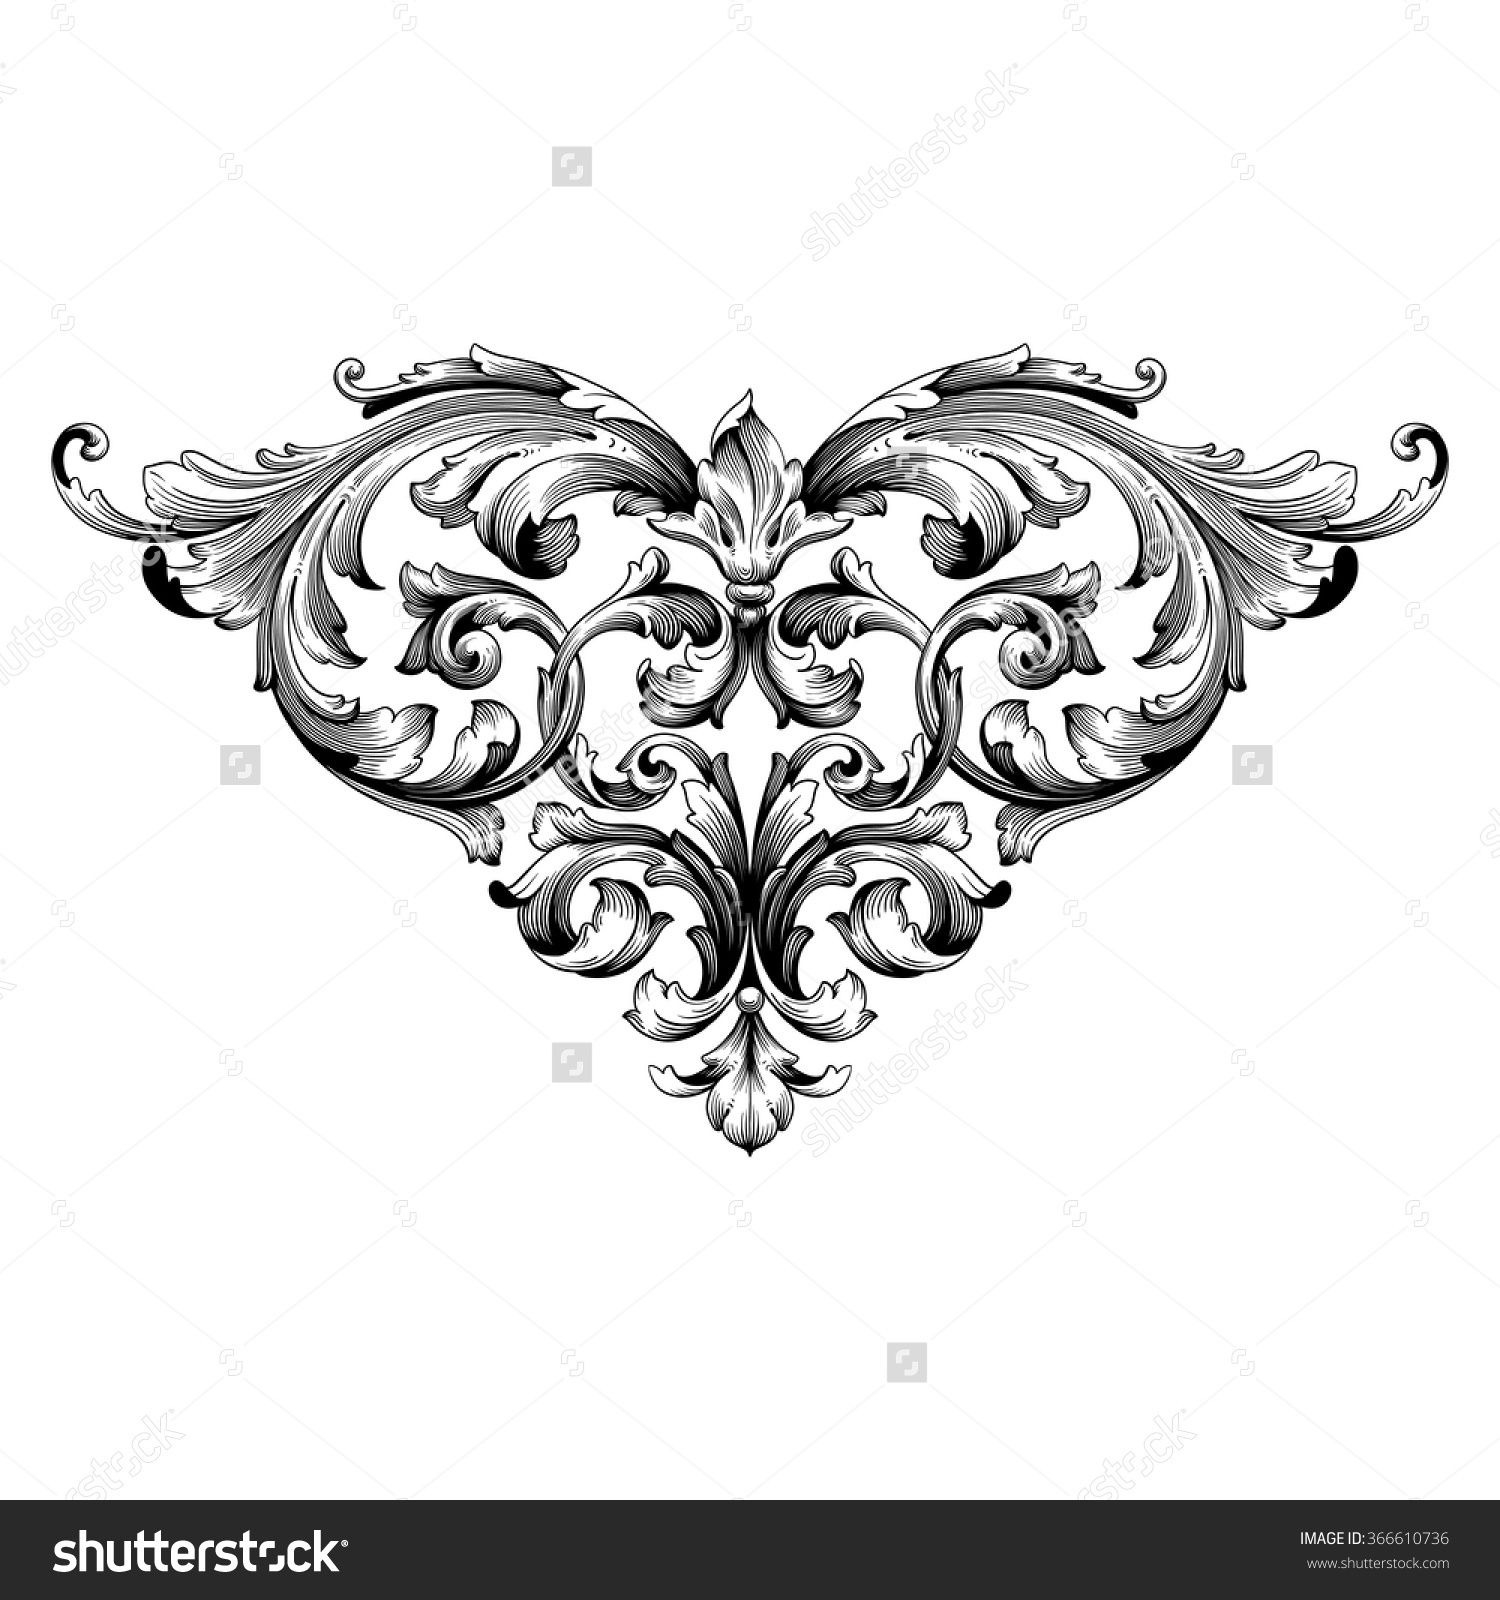 Antique Scroll Patterns: Stock-vector-vintage-baroque-frame-scroll-ornament